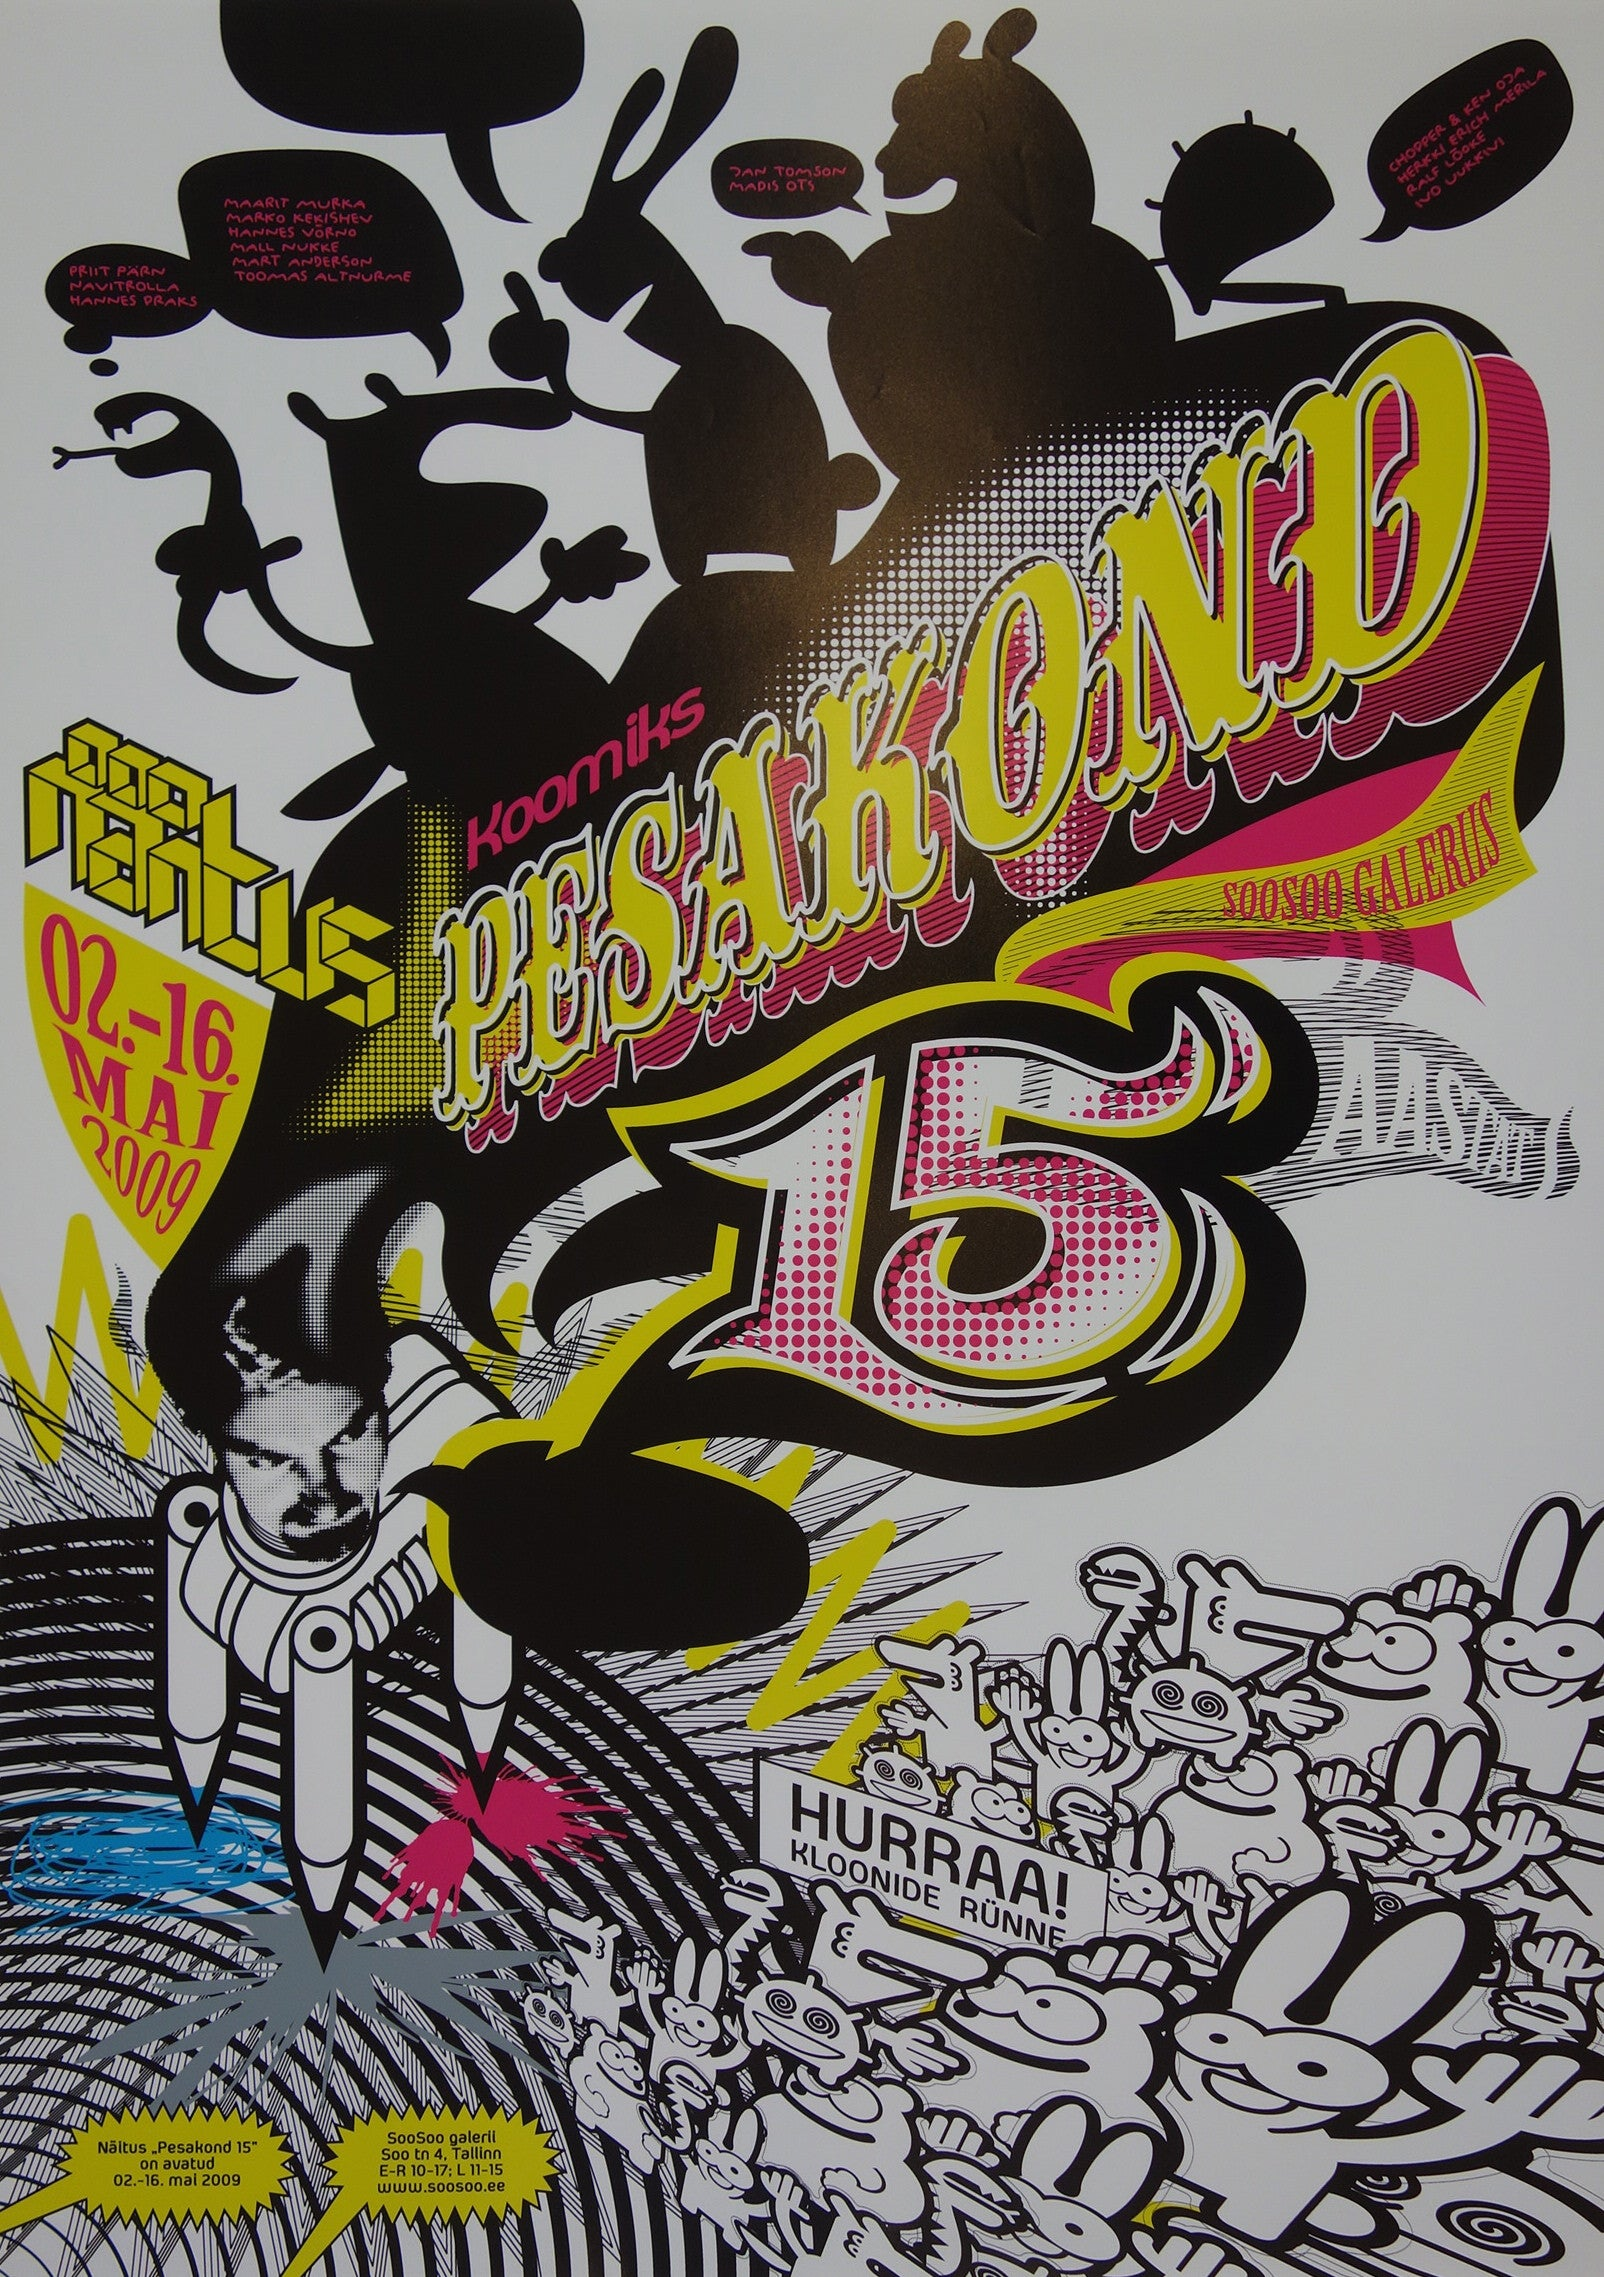 Pekakond 15 year old comic anniversary exhibition